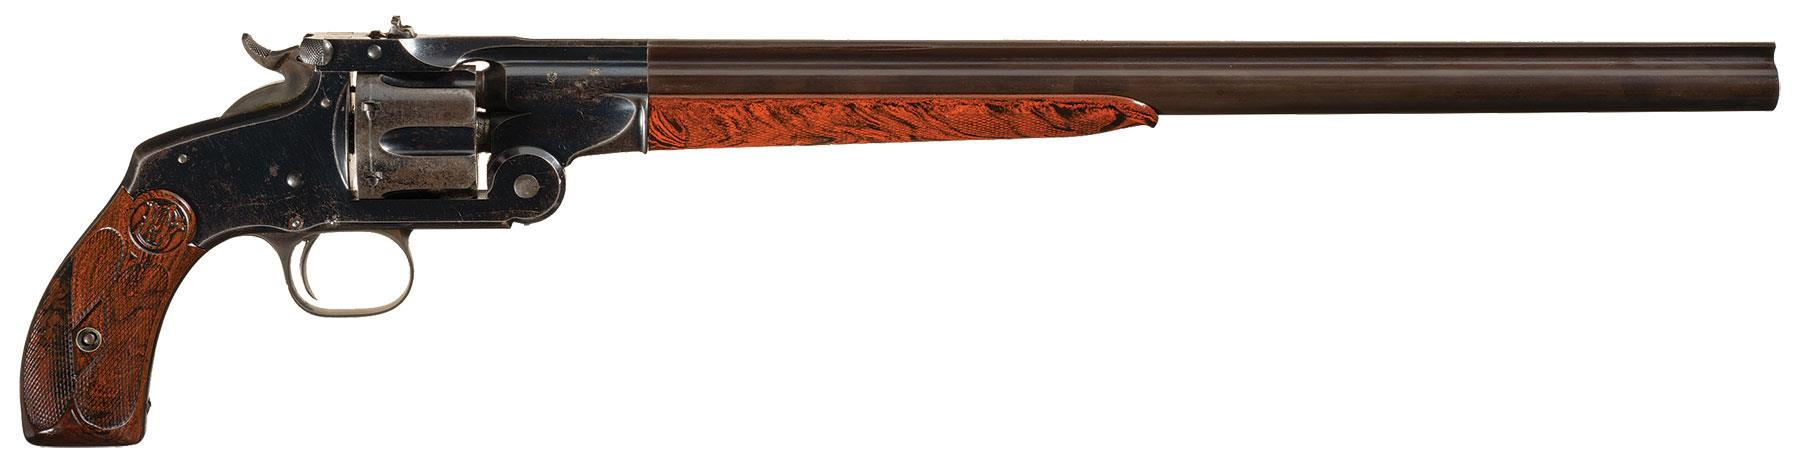 Smith & Wesson 320 Revolving Rifle Rifle 320